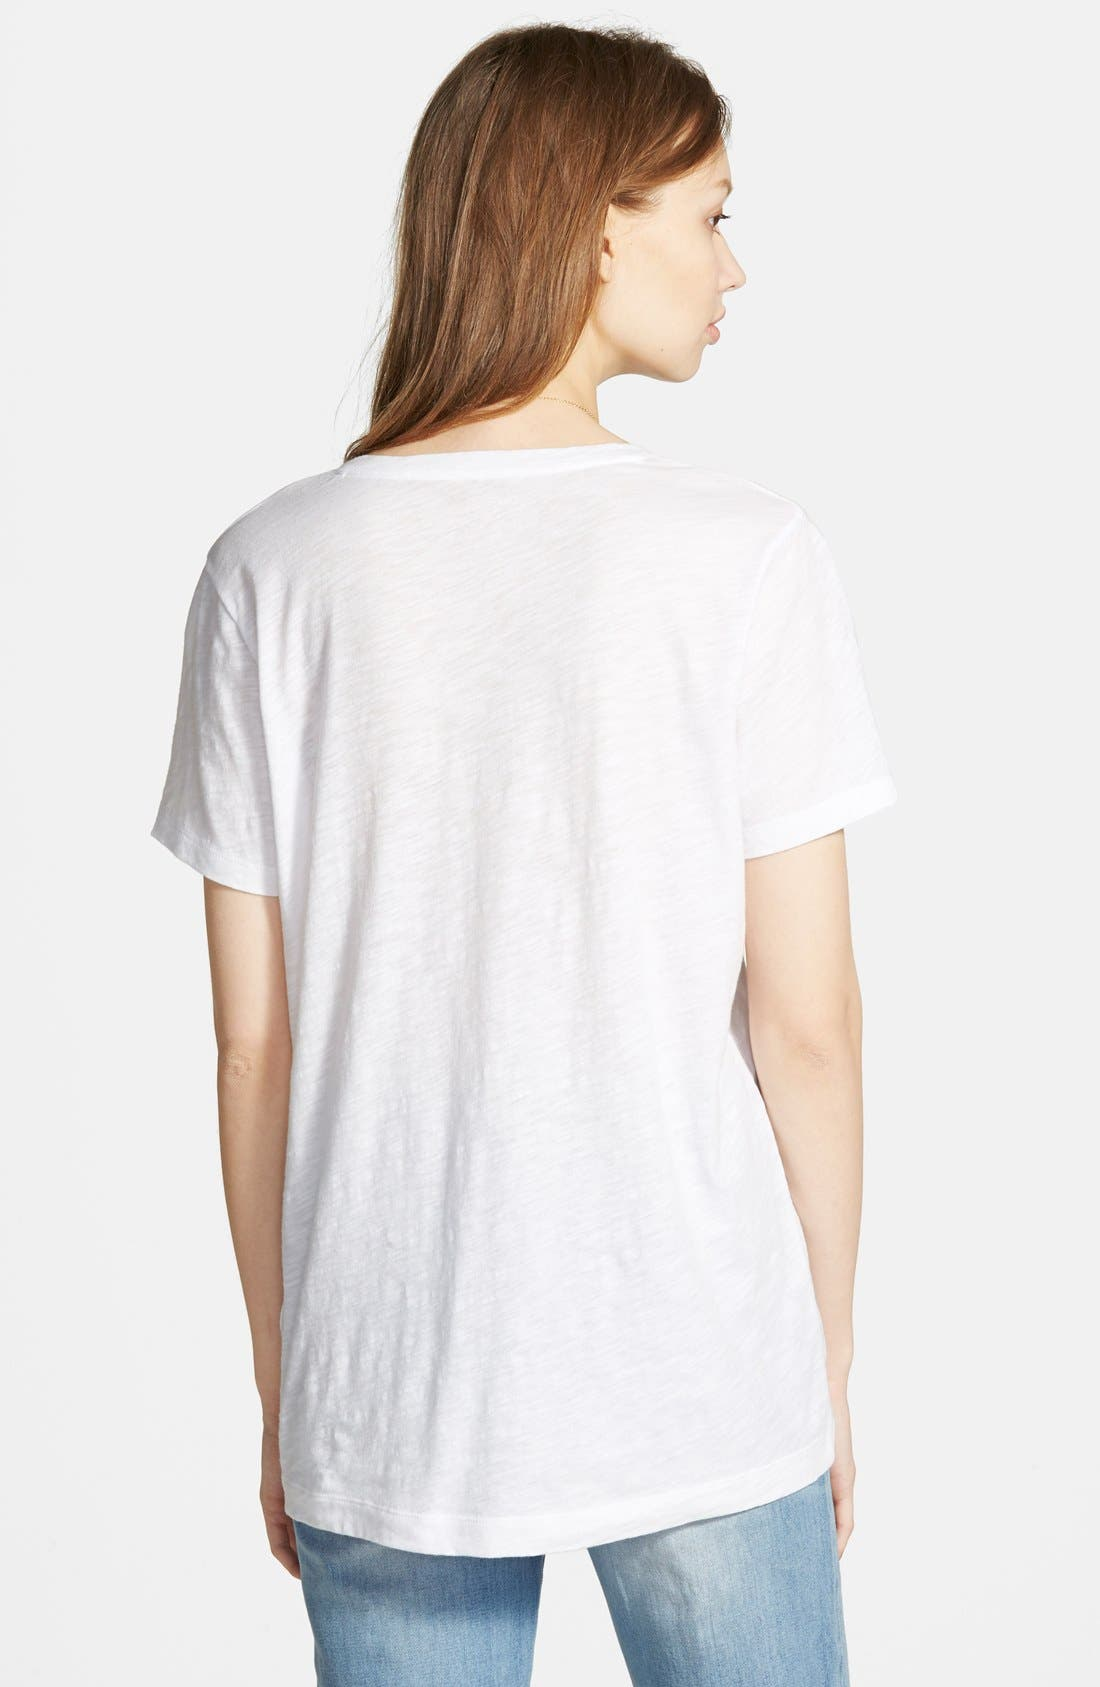 MADEWELL,                             Whisper Cotton V-Neck Pocket Tee,                             Alternate thumbnail 3, color,                             100